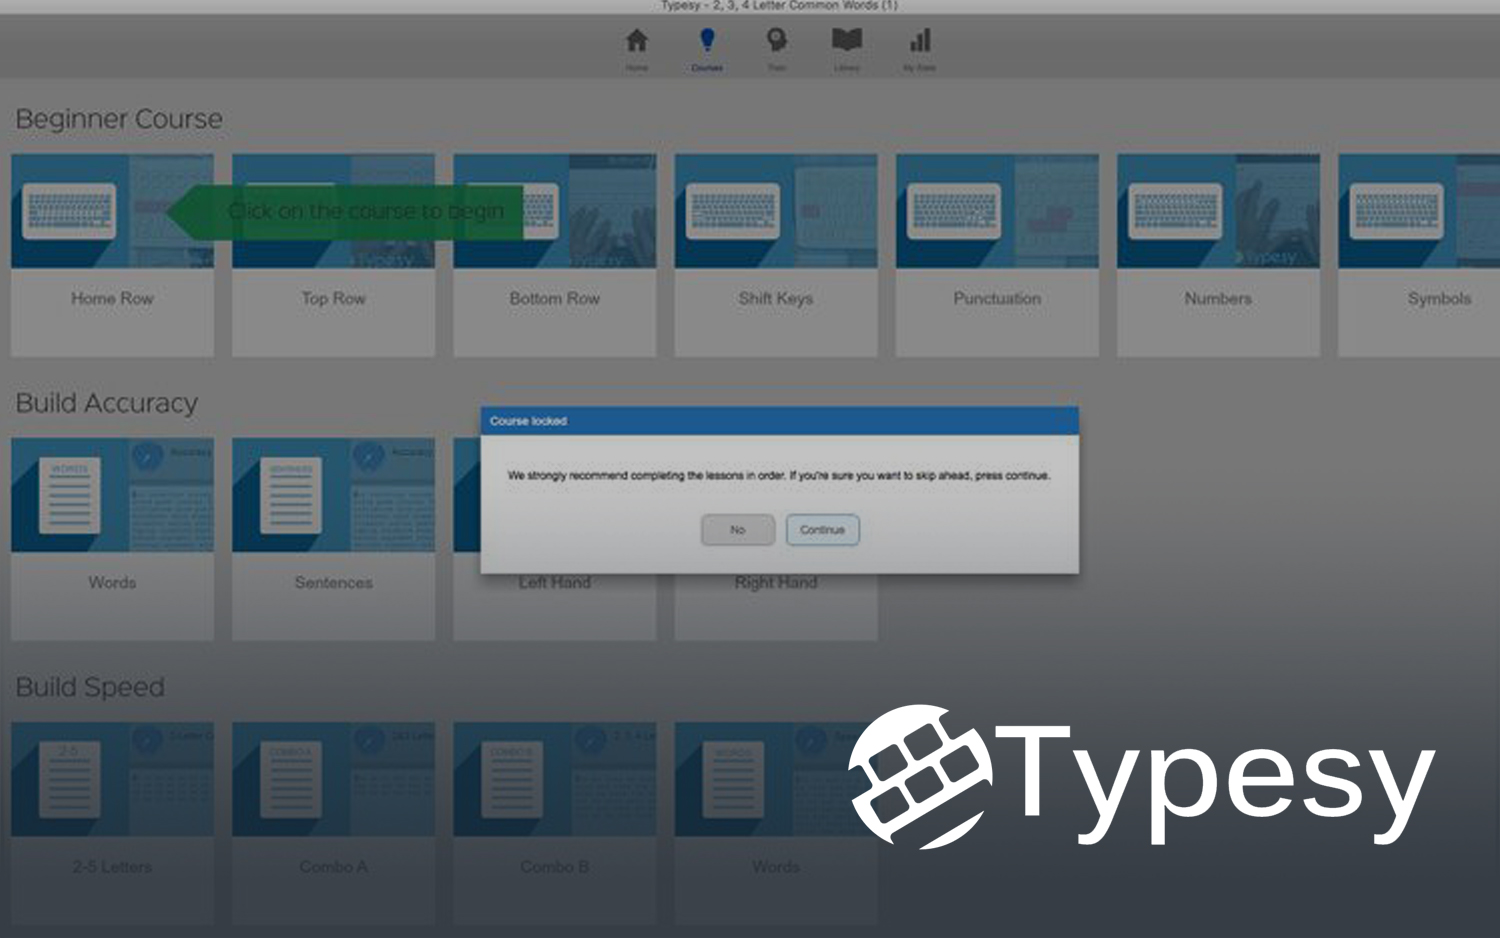 Best Typing Software 2019 - Free, Paid Programs for Student & Adults